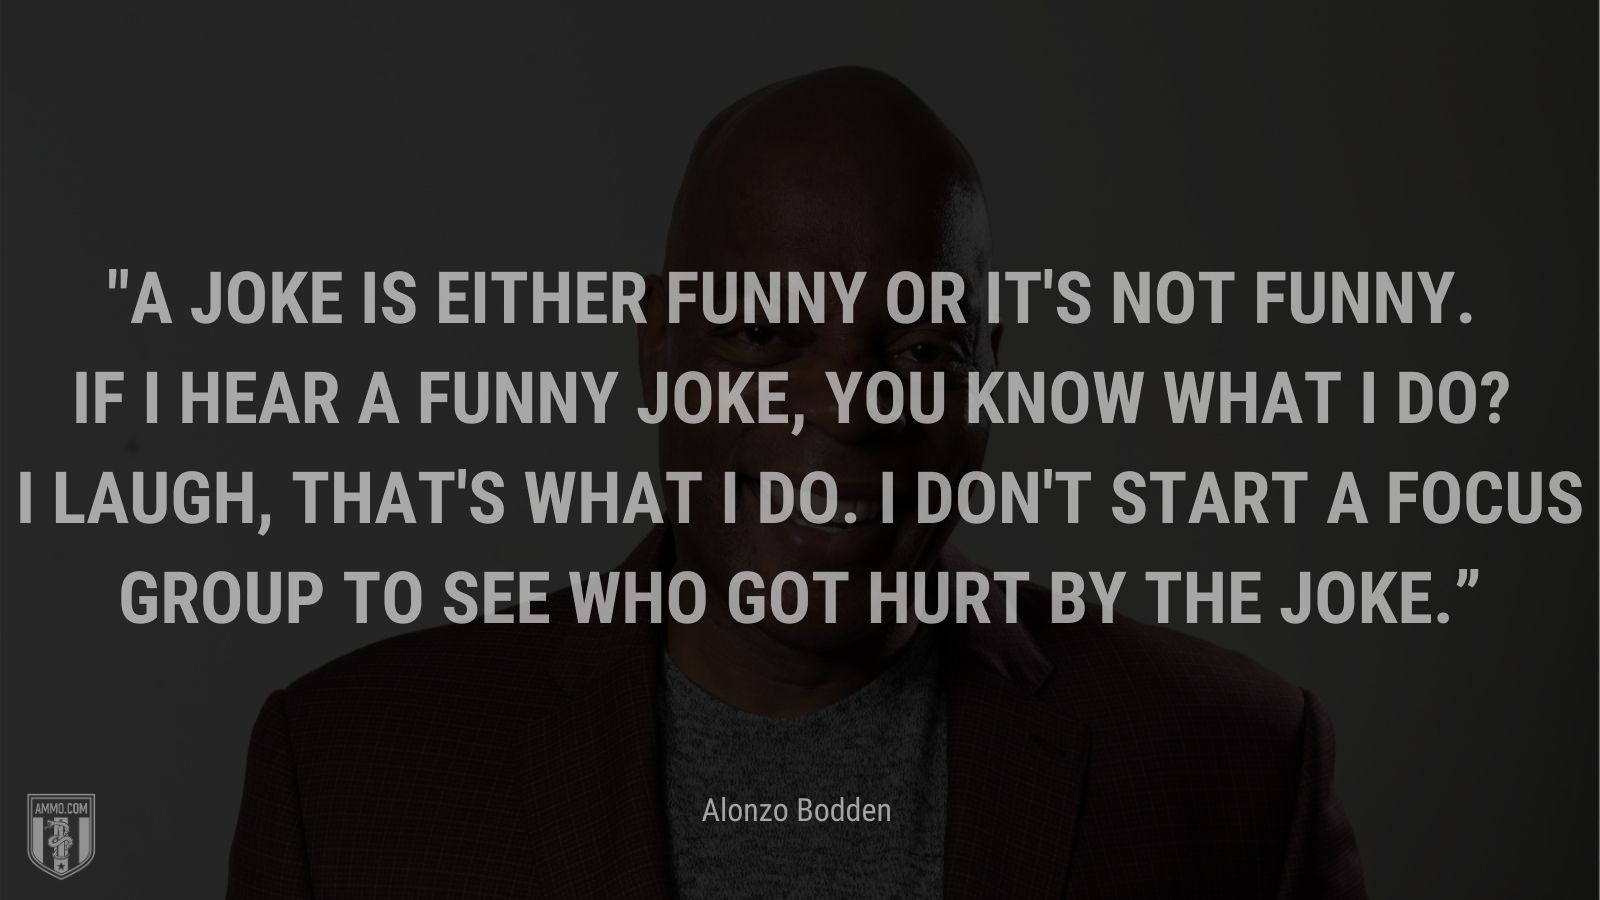 """""""A joke is either funny or it's not funny. If I hear a funny joke, you know what I do? I laugh, that's what I do. I don't start a focus group to see who got hurt by the joke."""" - Alonzo Bodden"""